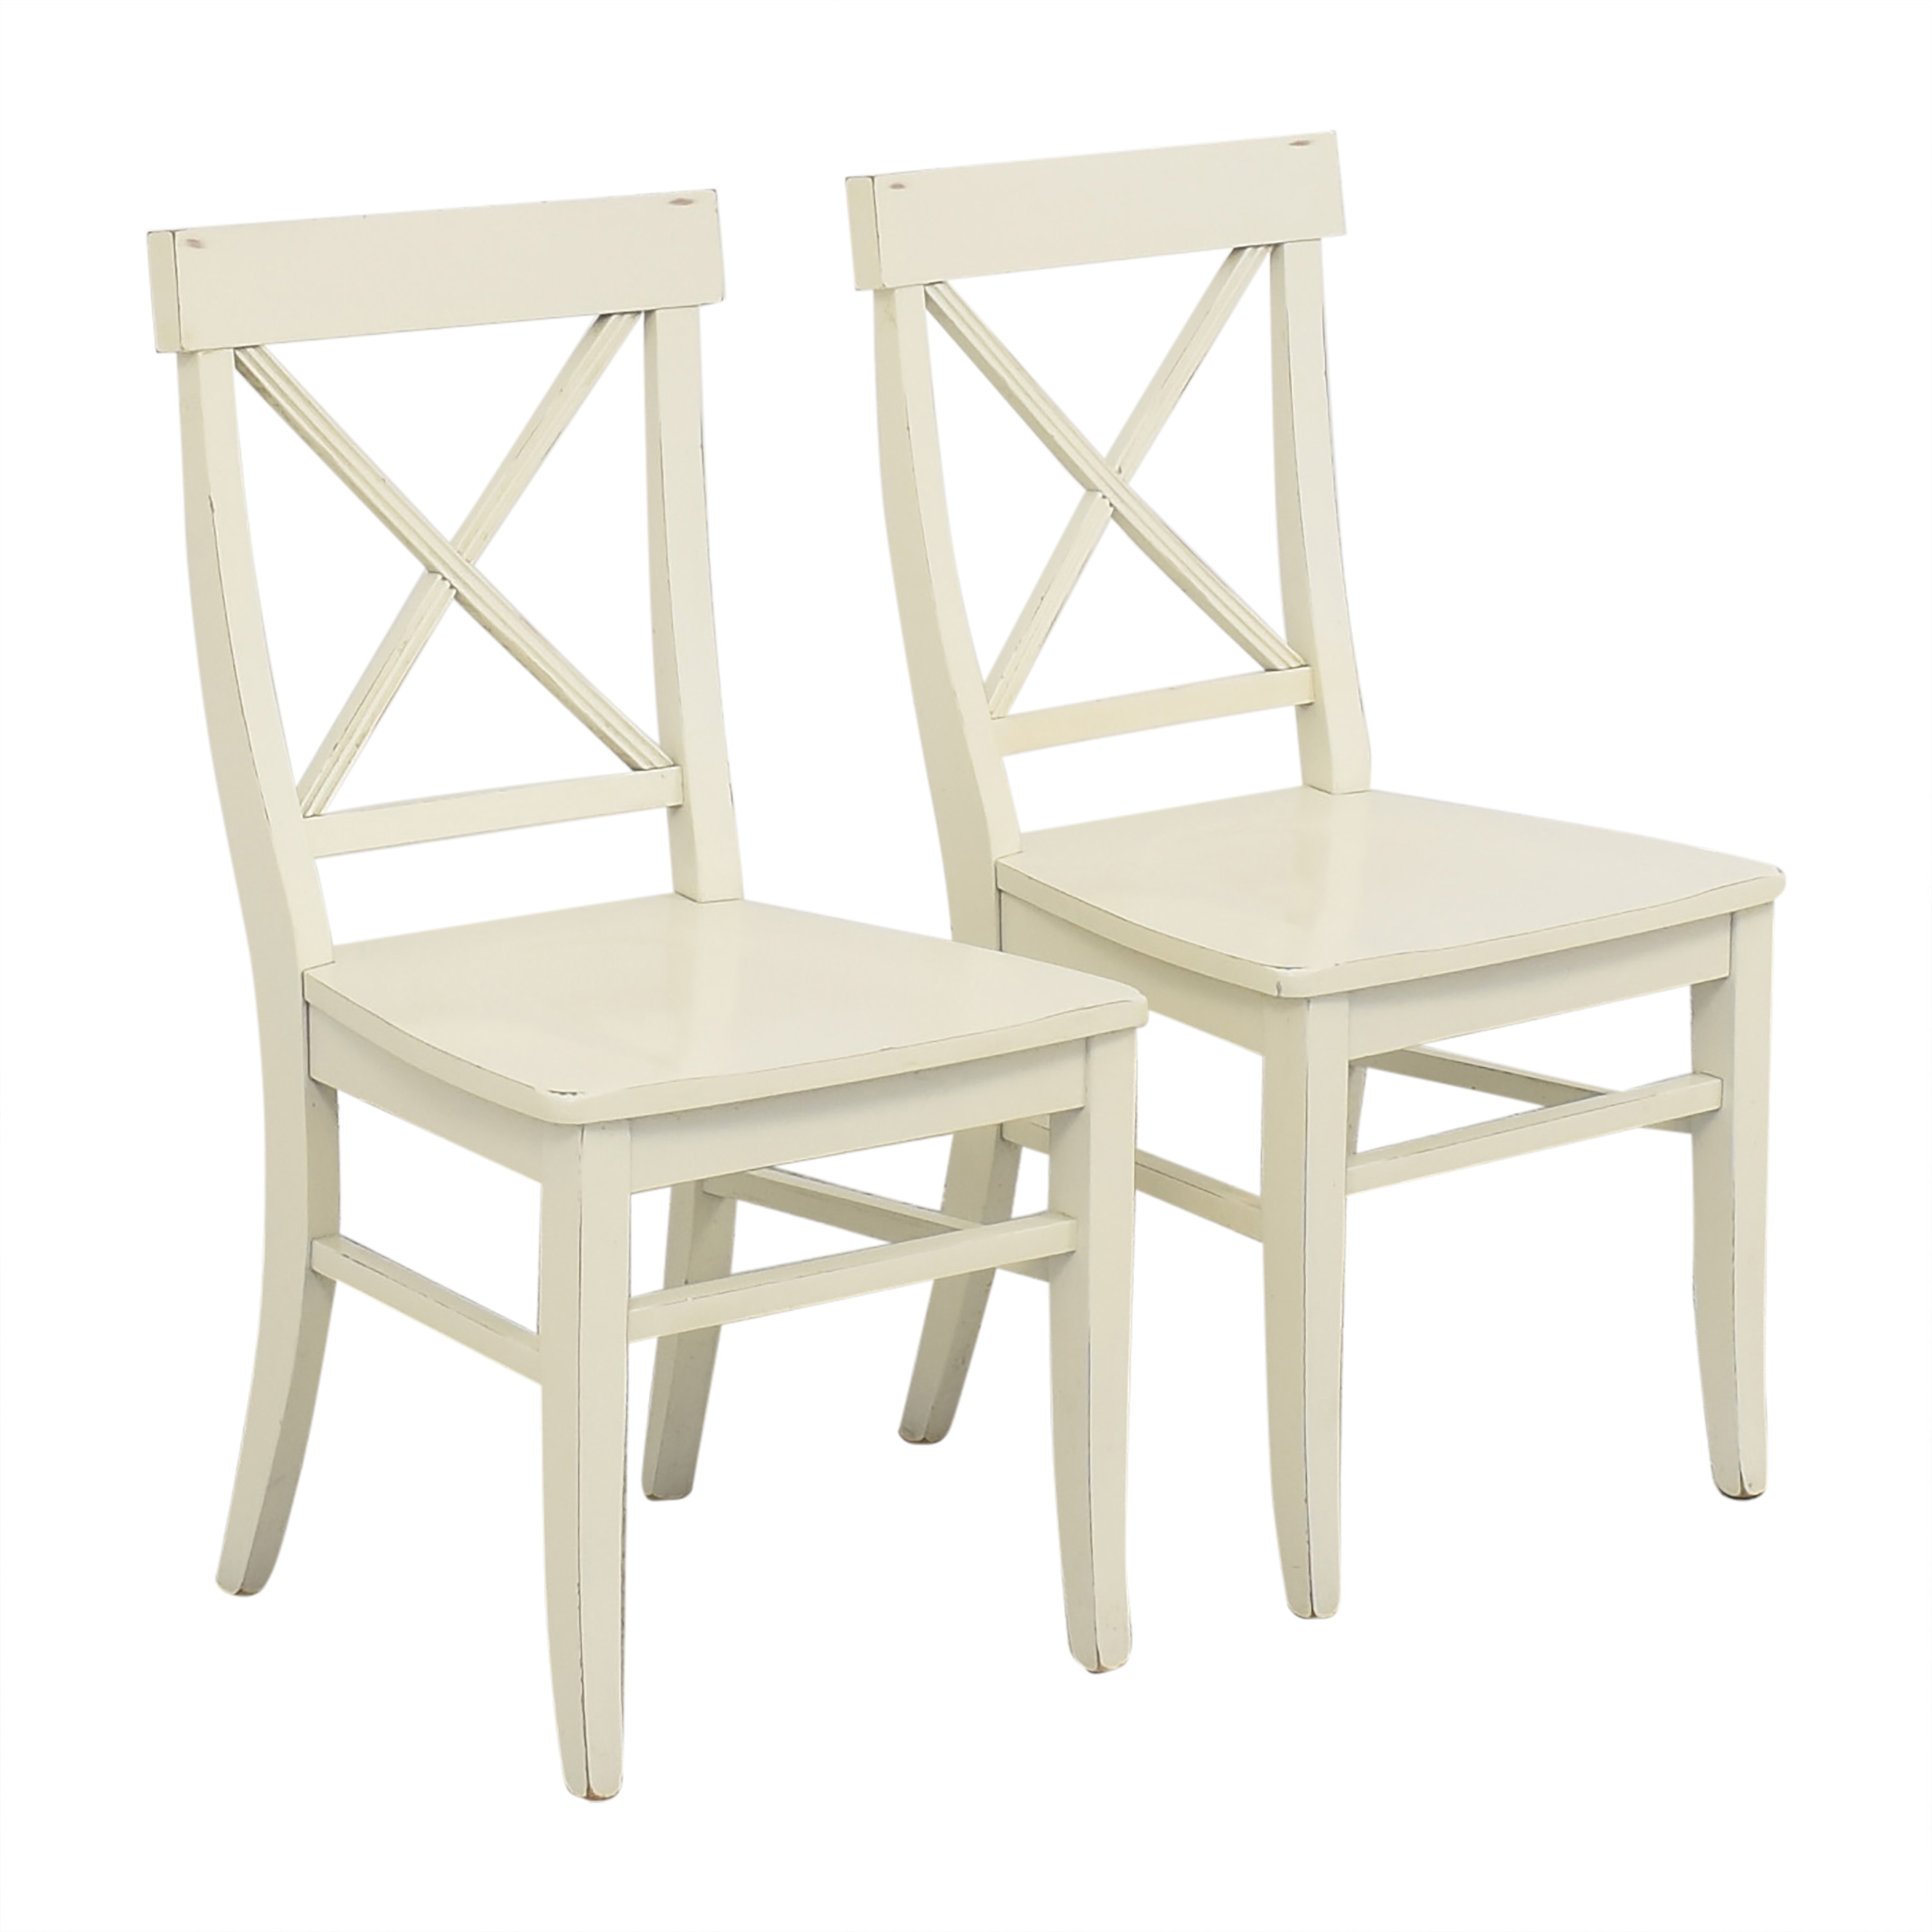 Pottery Barn Pottery Barn Aaron Dining Chairs discount